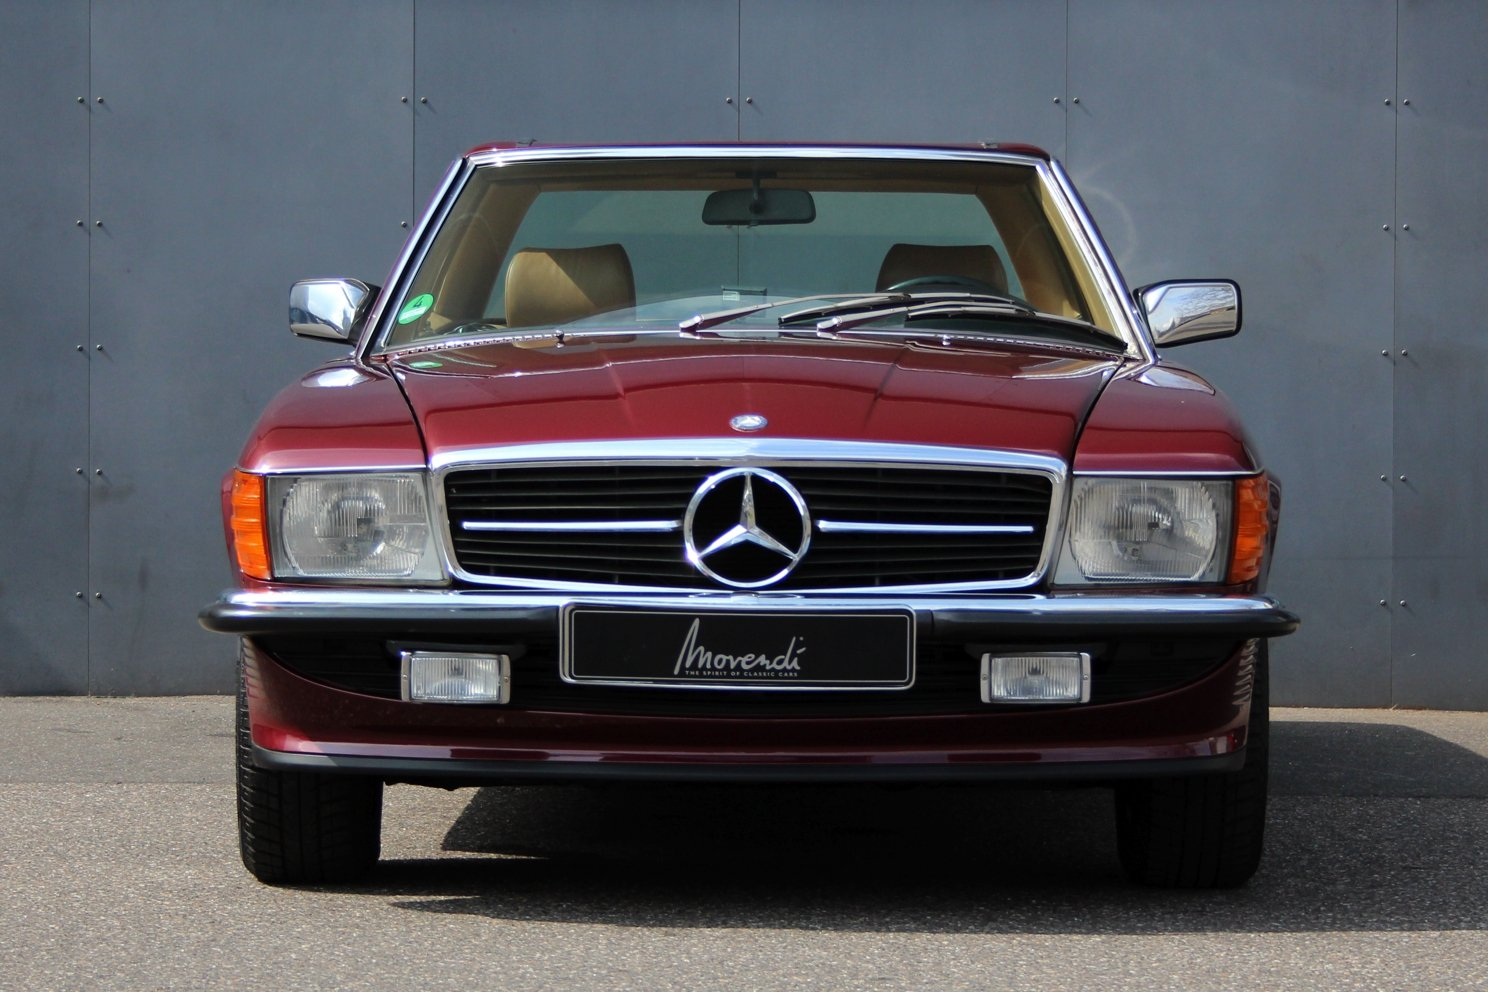 1986 Mercedes-Benz 300 SL LHD For Sale (picture 6 of 6)